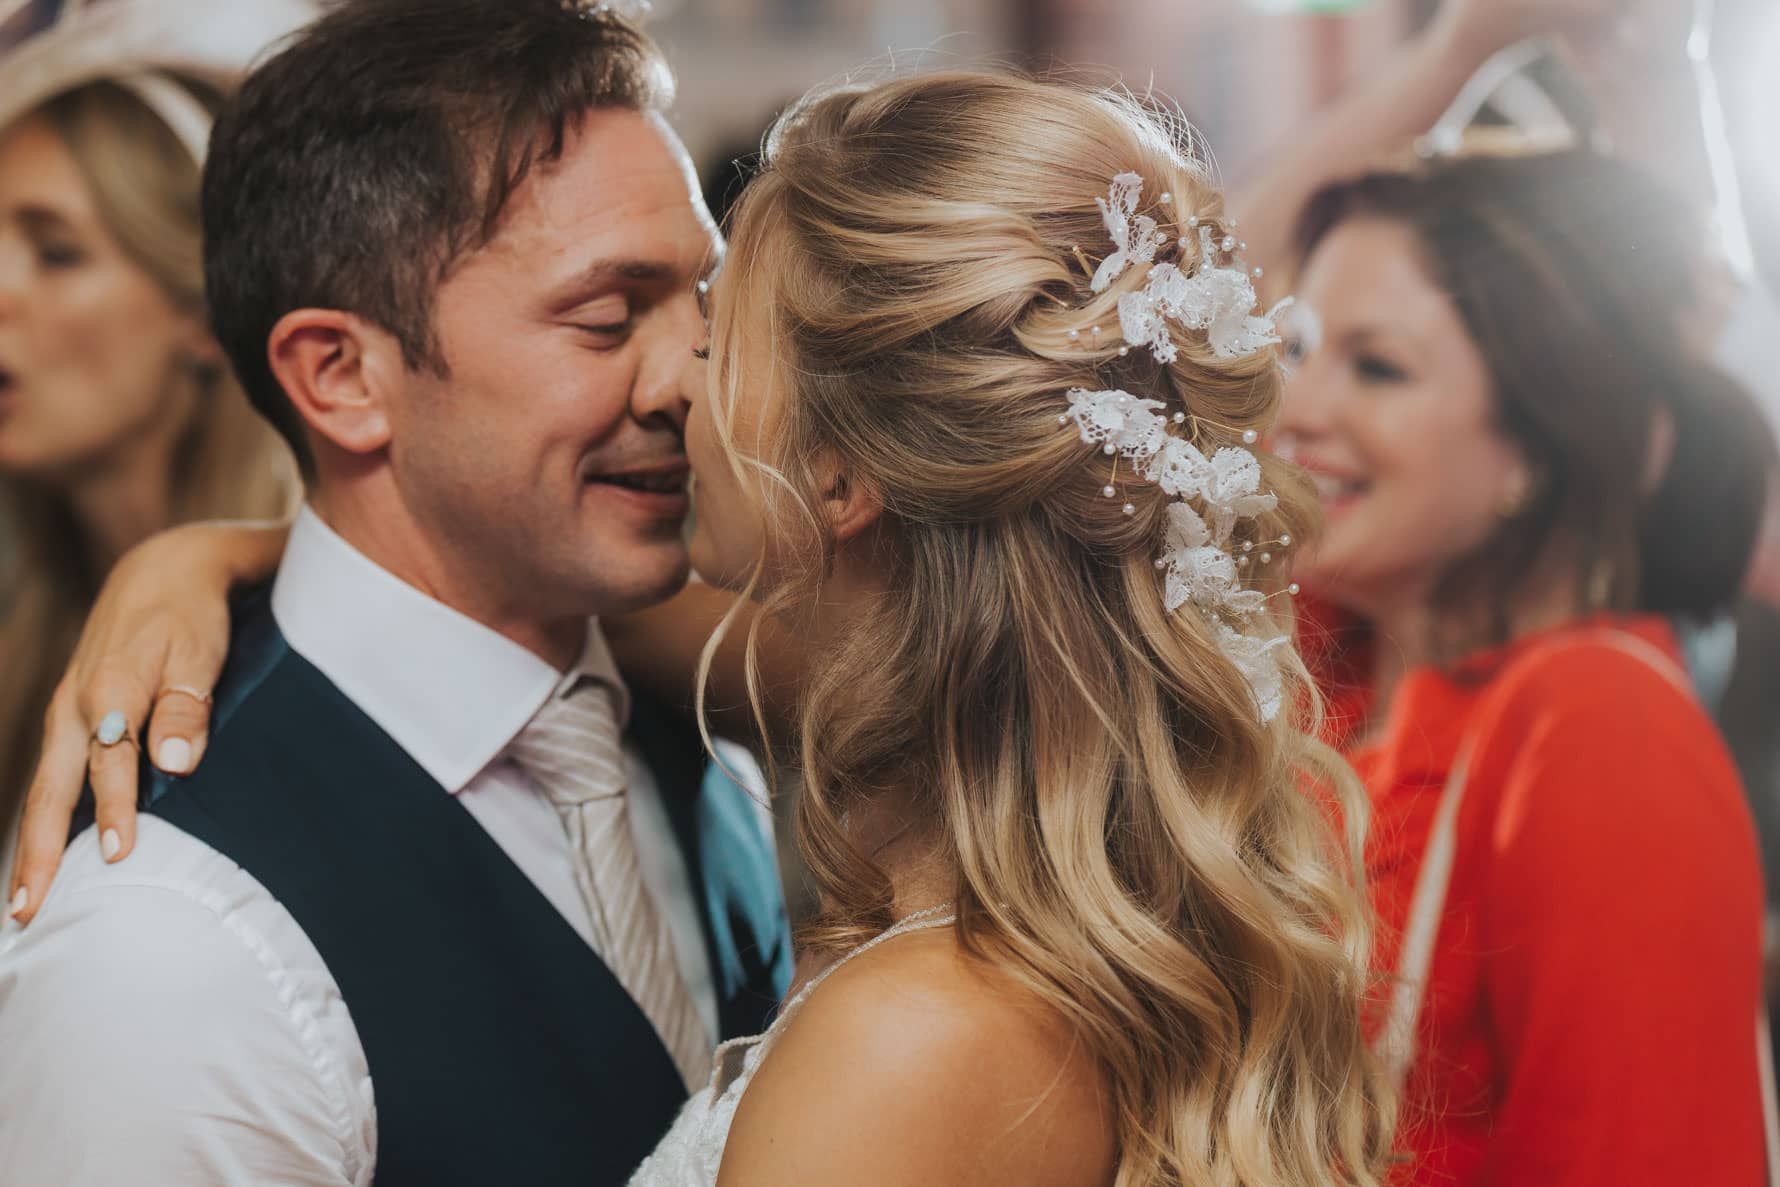 Bride and groom smushing noses during their first dance